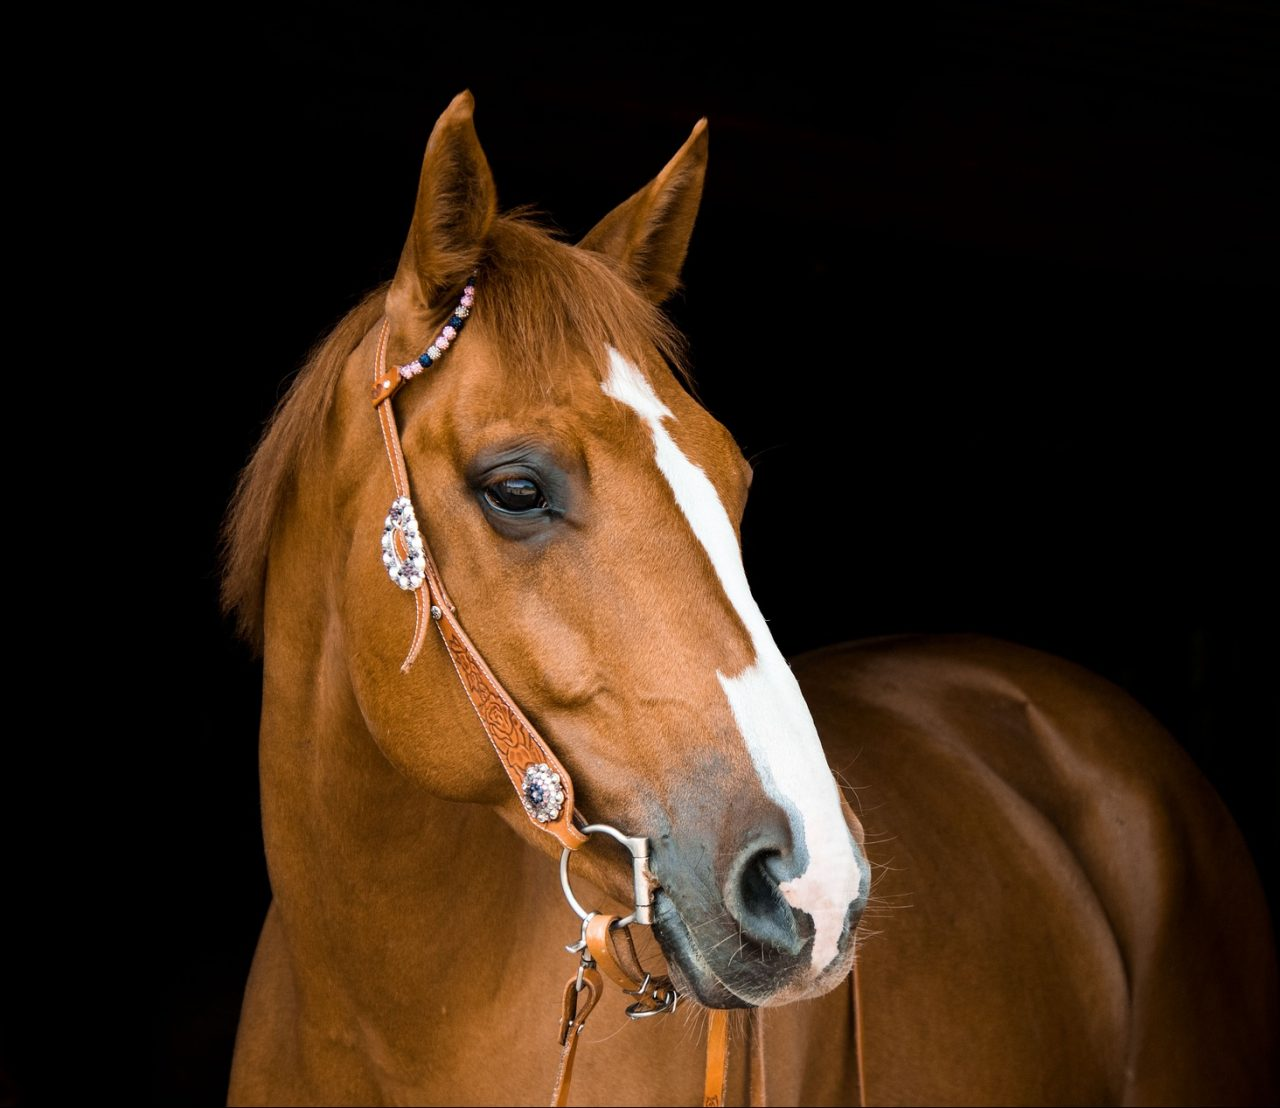 https://www.customhorseportraits.com/wp-content/uploads/horse-3390256_1920-e1542251192210-1280x1108.jpg